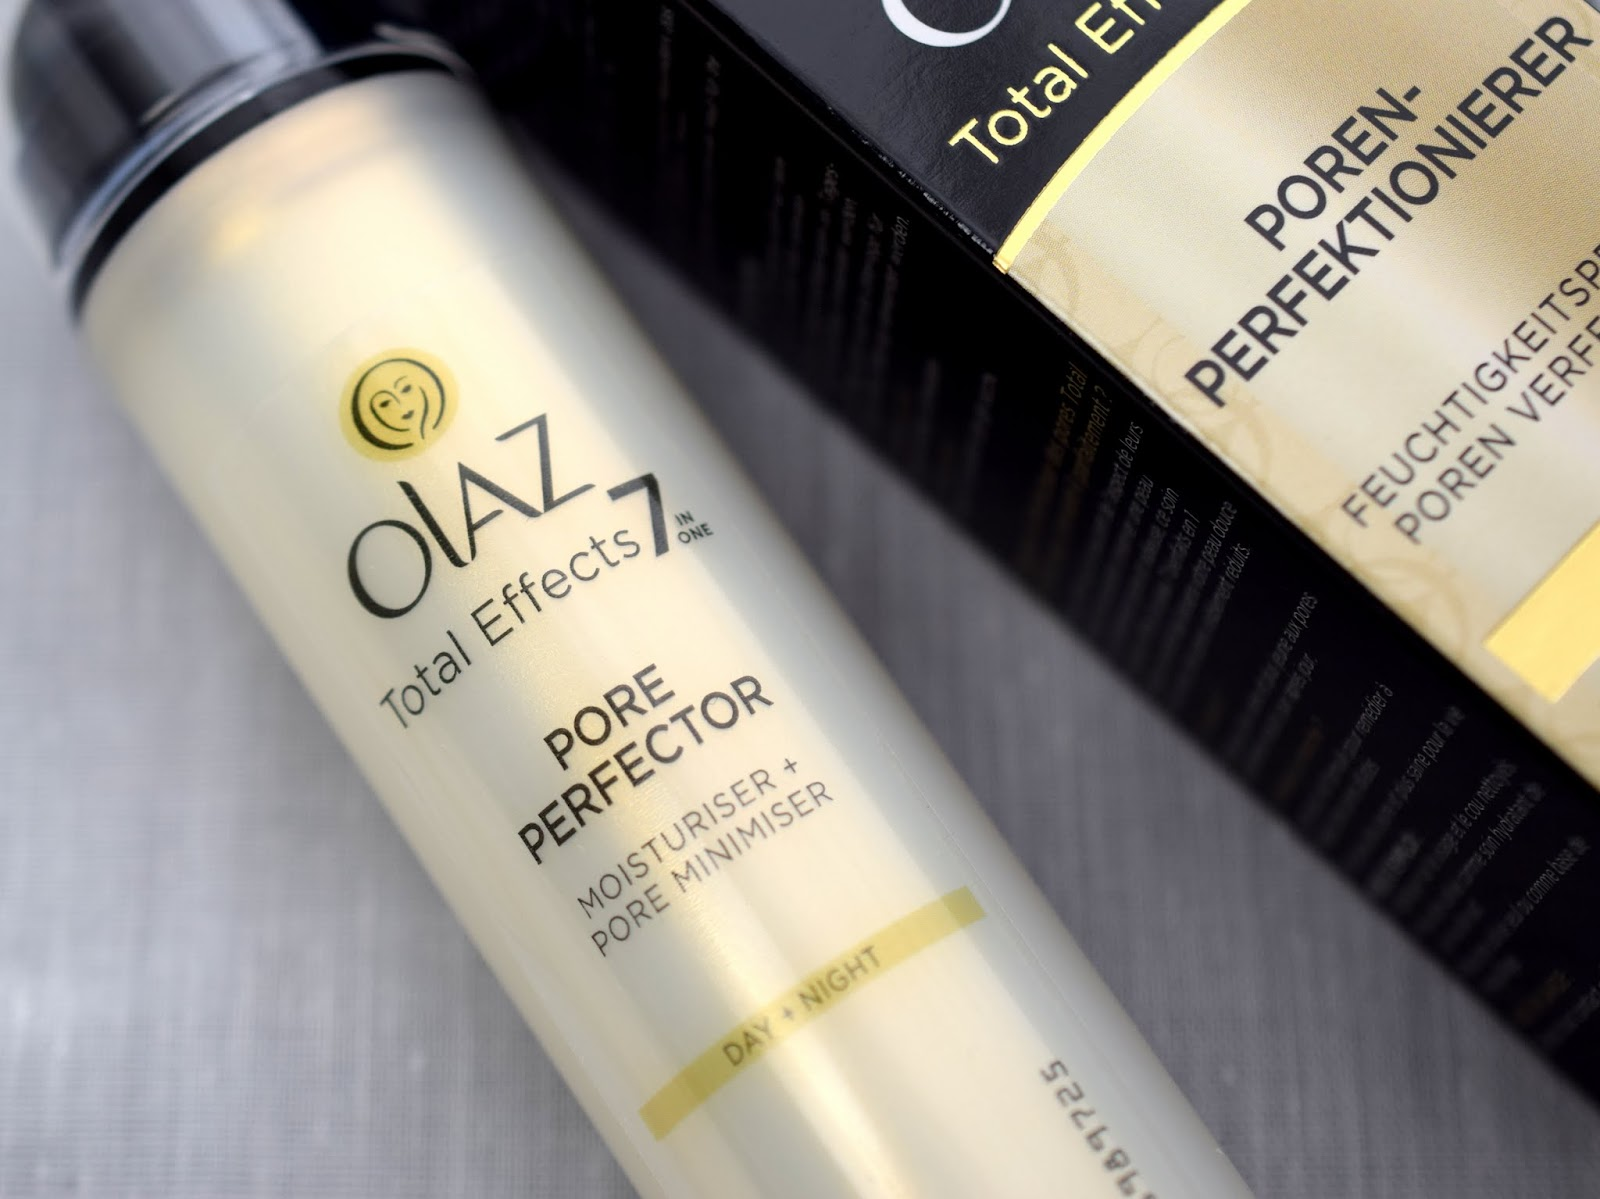 Beauty-Test: Olaz Total Effects 7 in one Poren-Perfektionierer